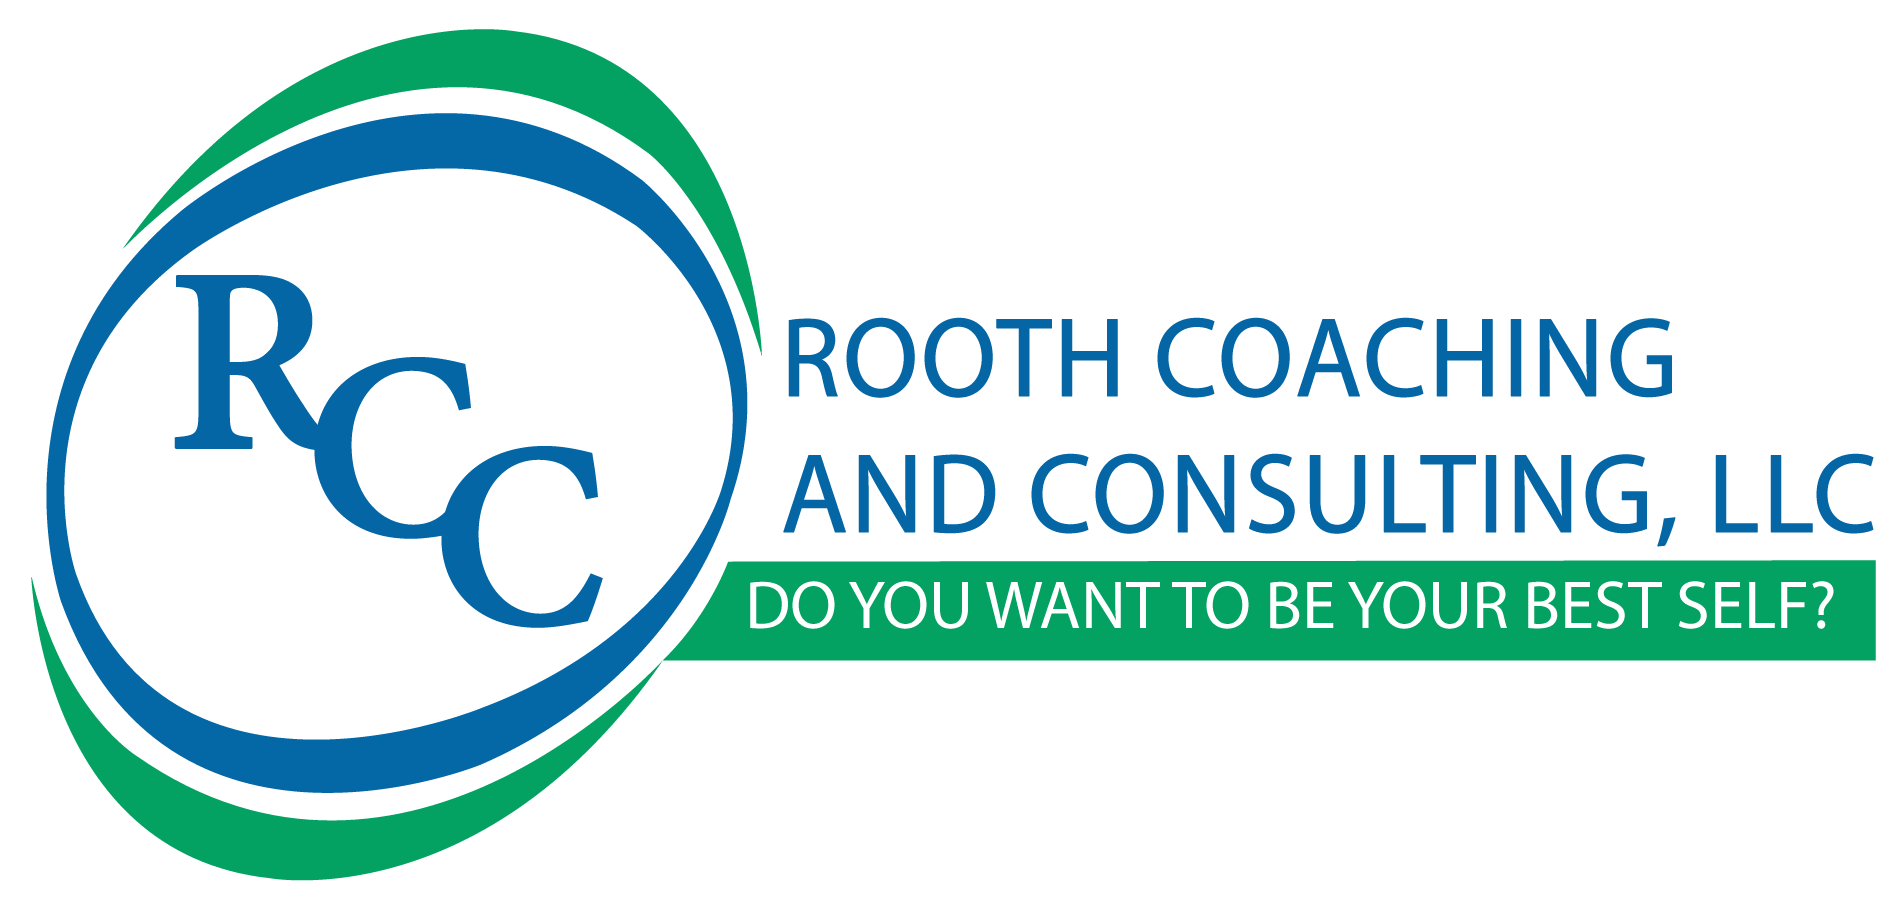 Rooth Coaching and Consulting